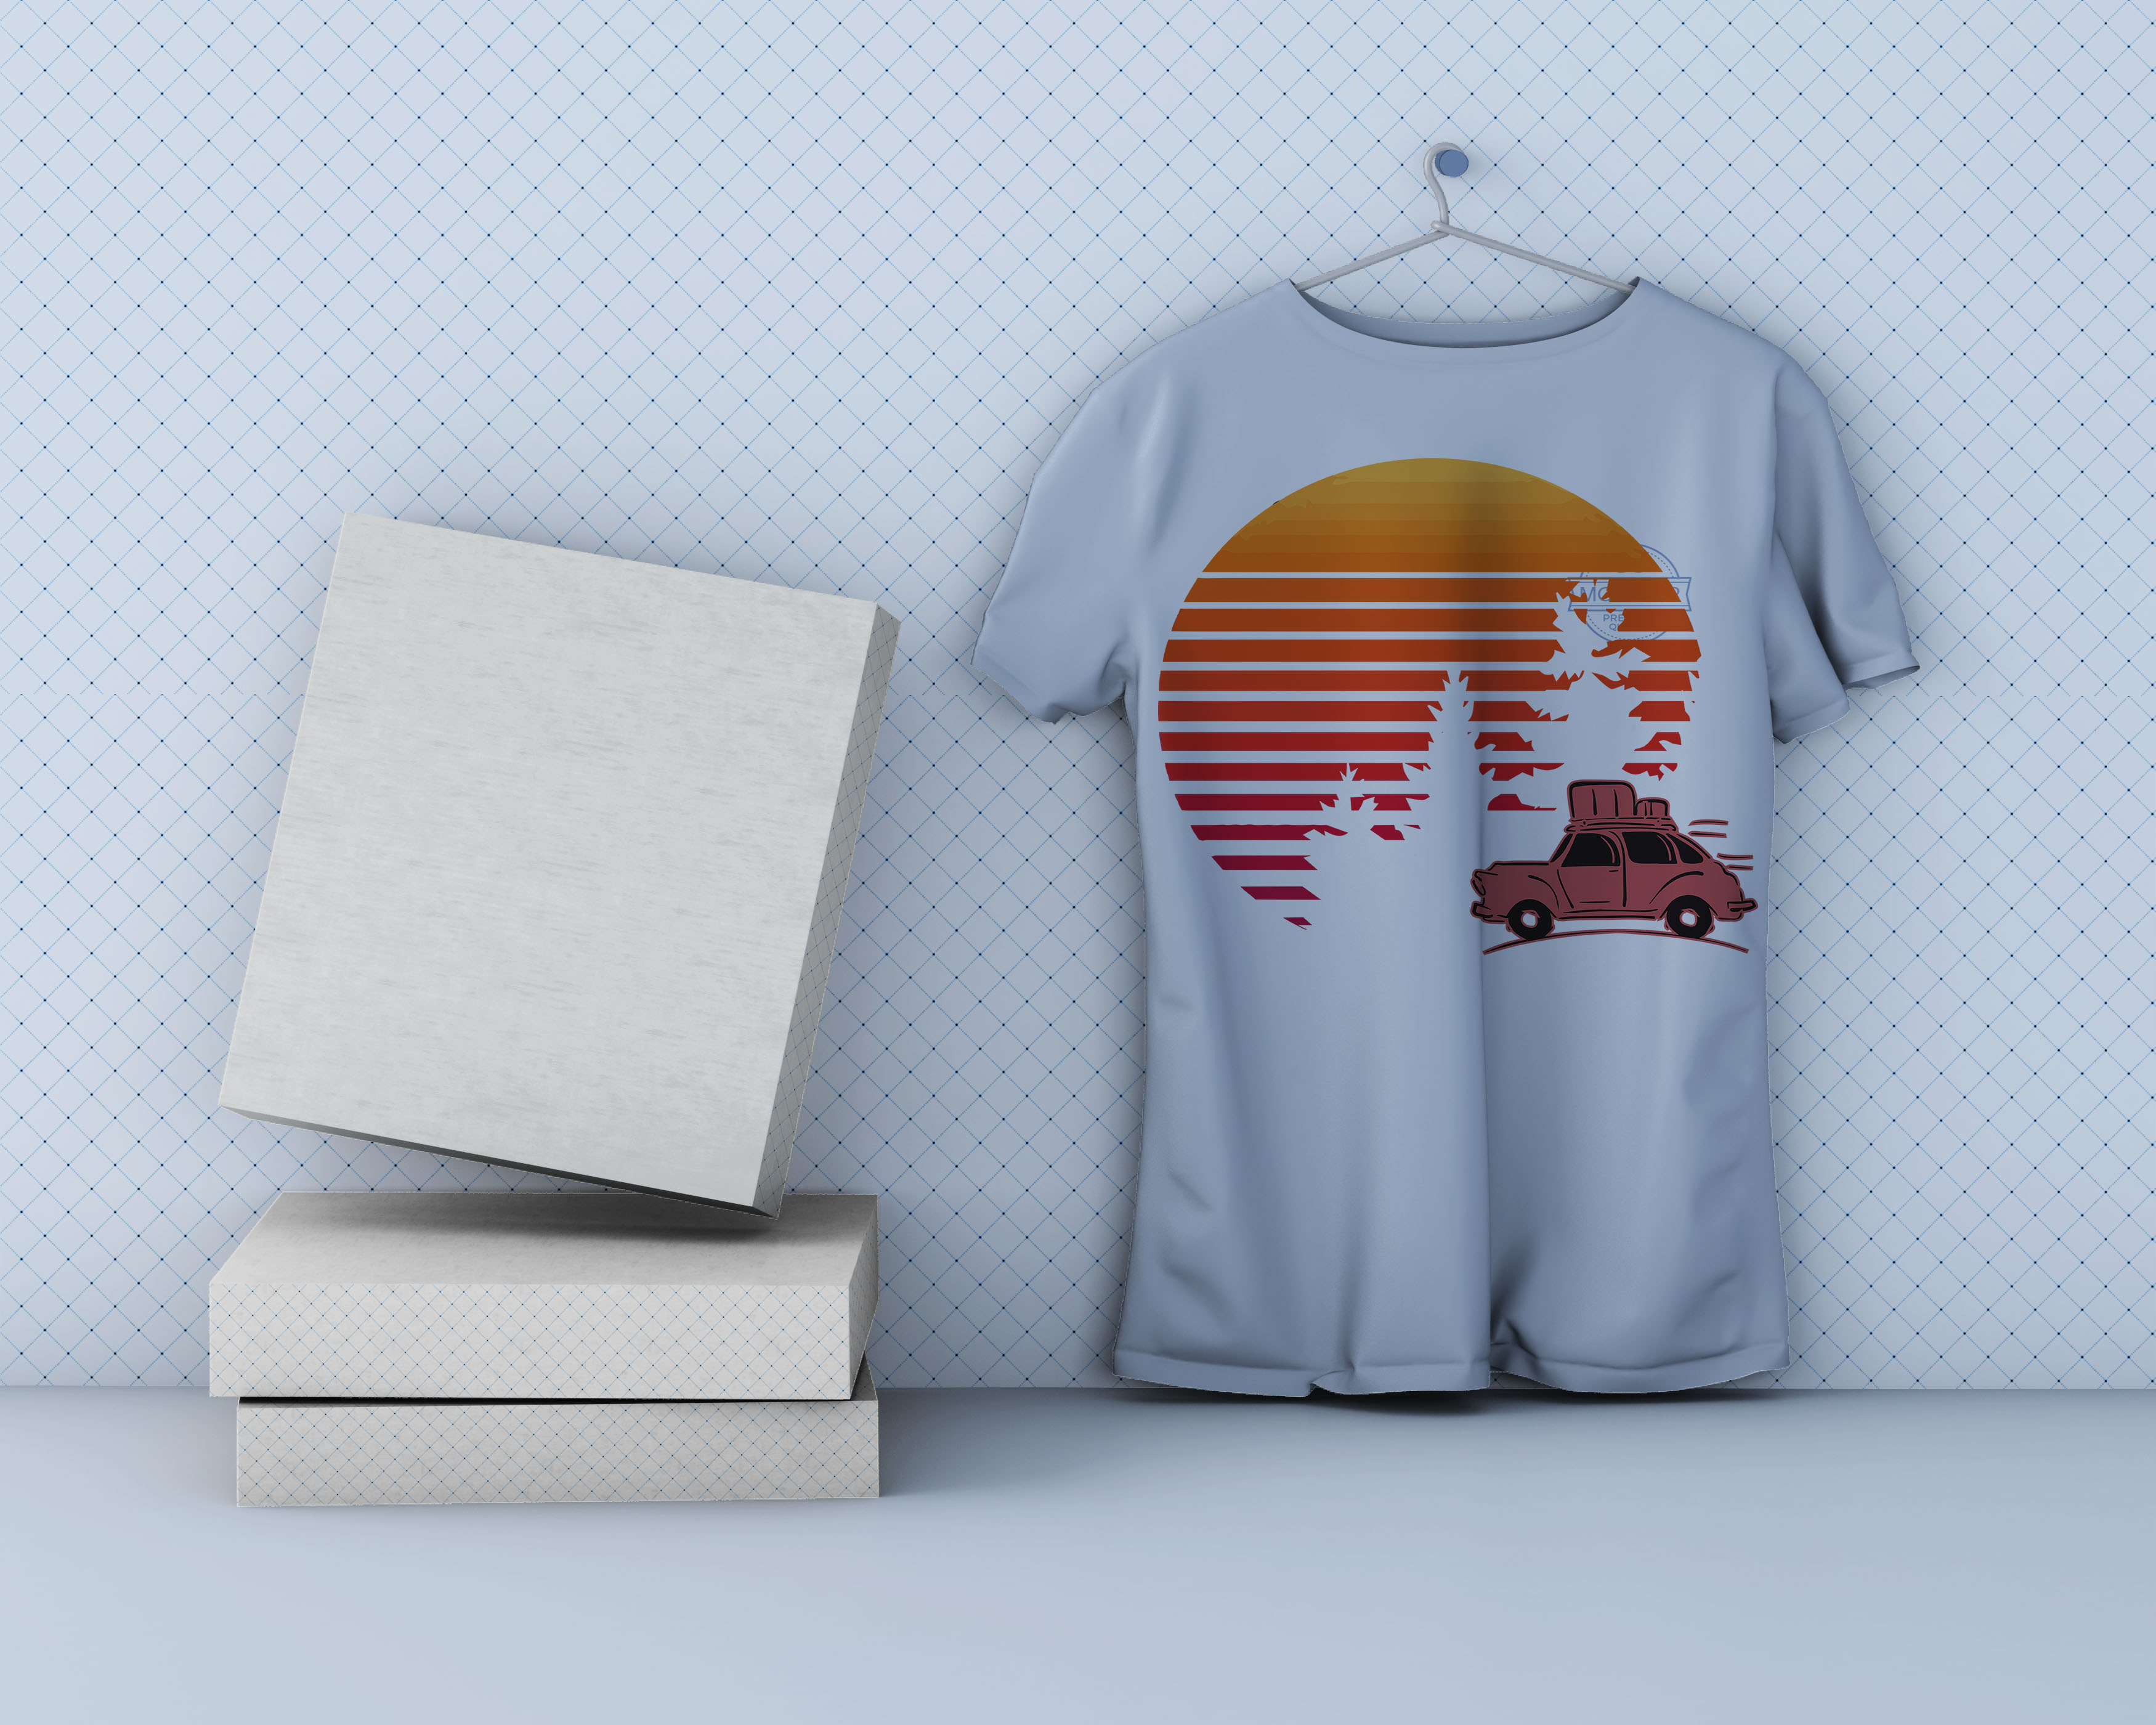 I can design a unique eye catching T shirt